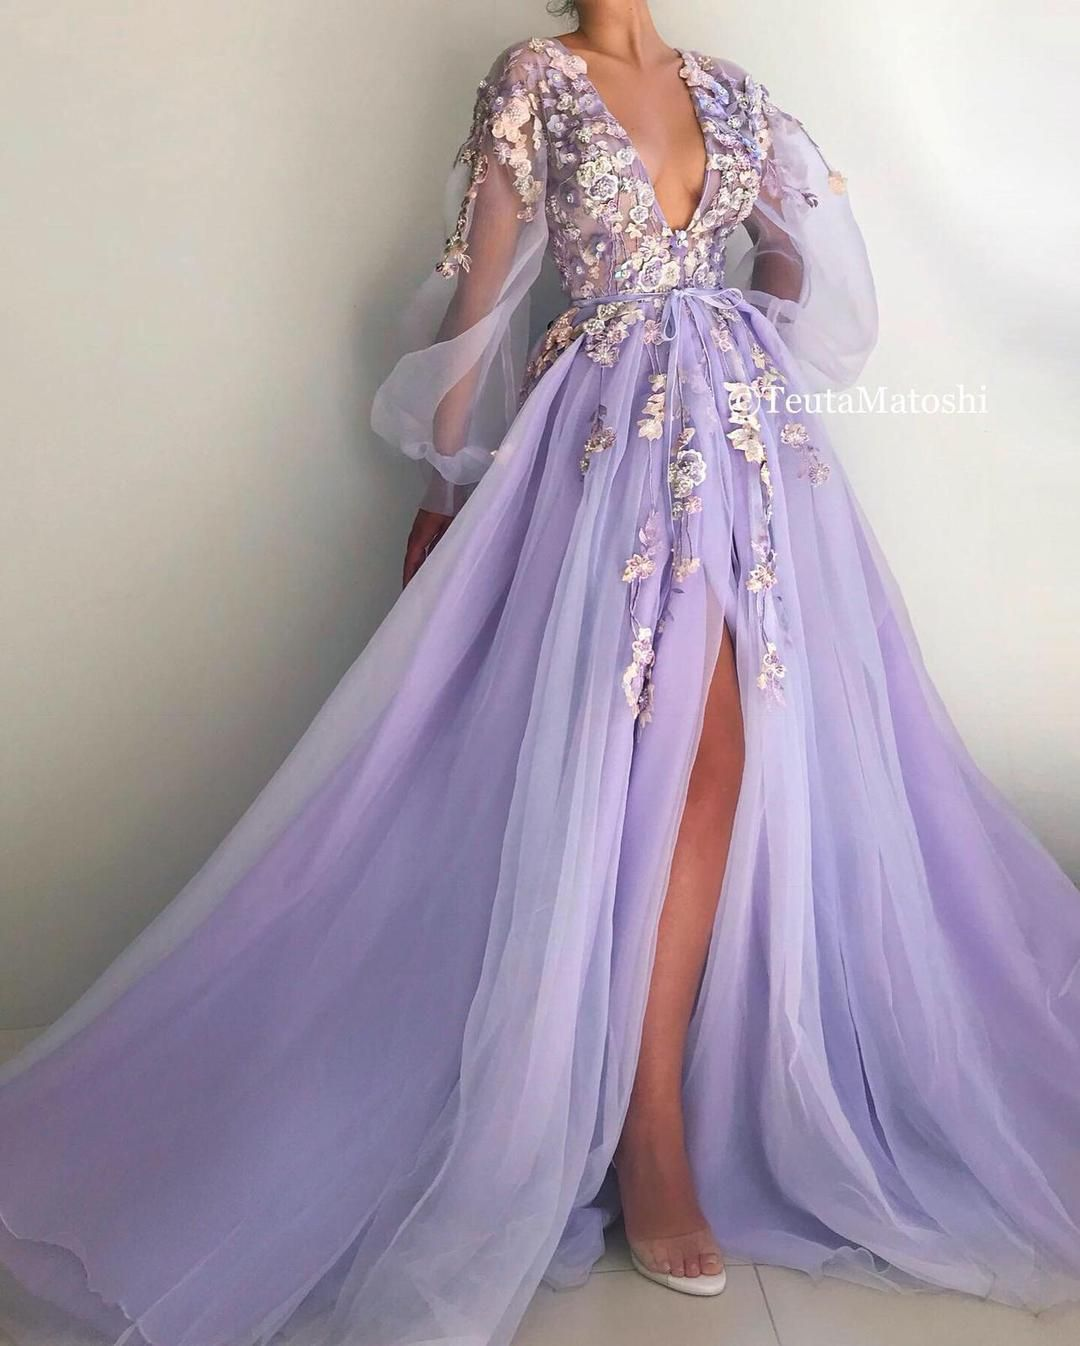 Nina's Lilac Blooms Gown